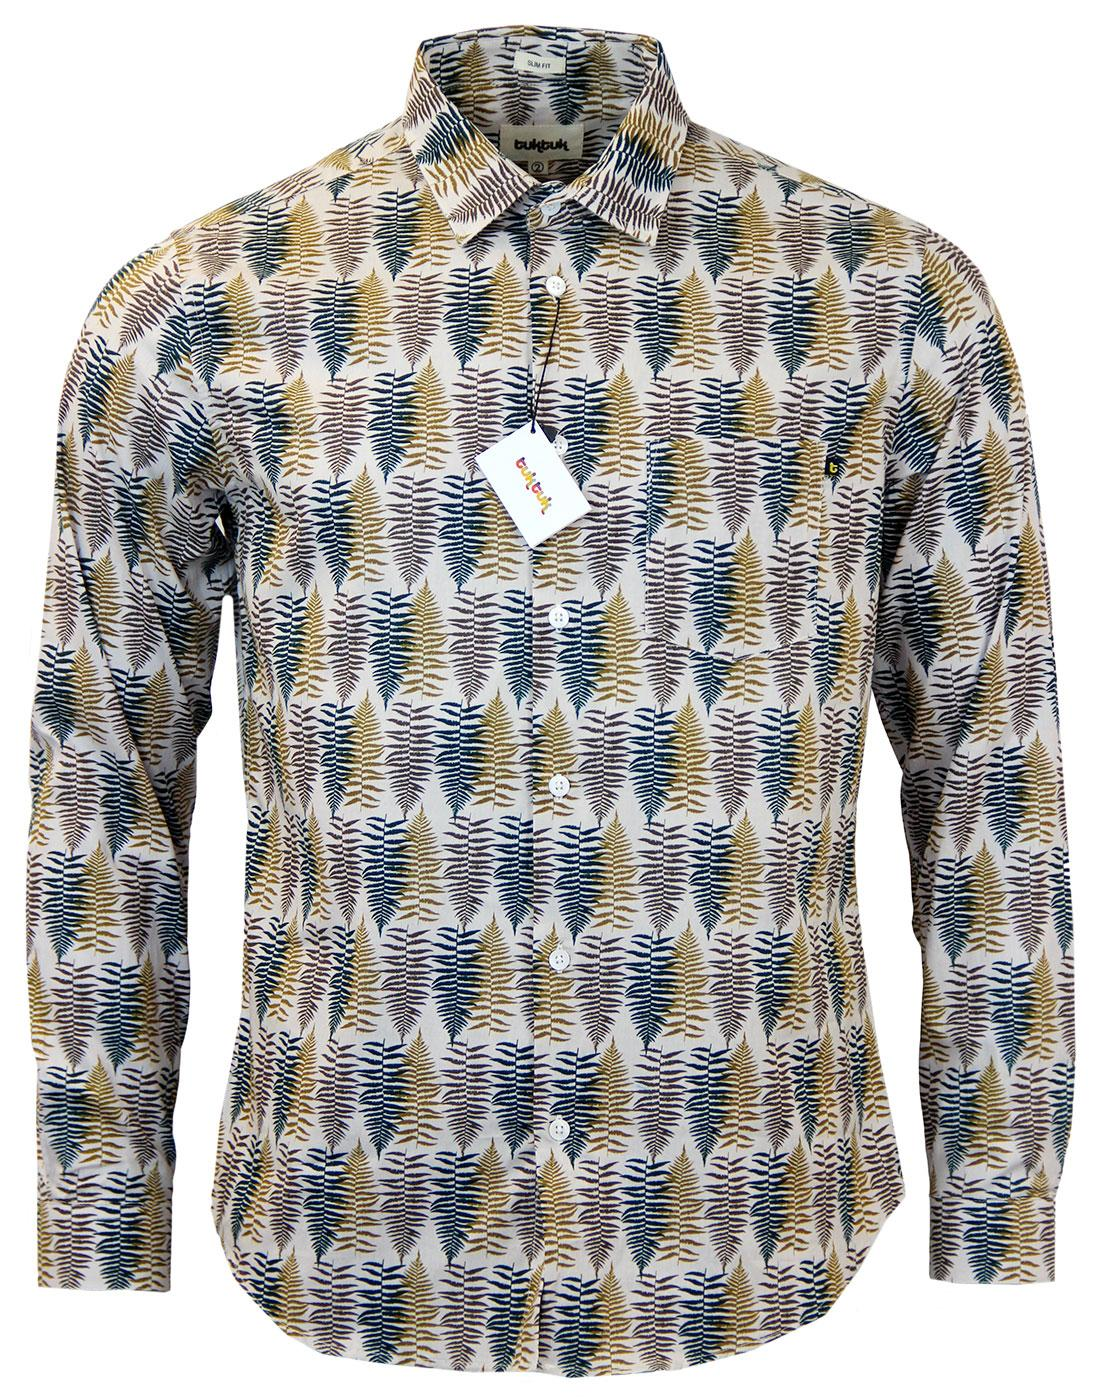 Falling Leaves TUKTUK Retro Leaf Print Shirt